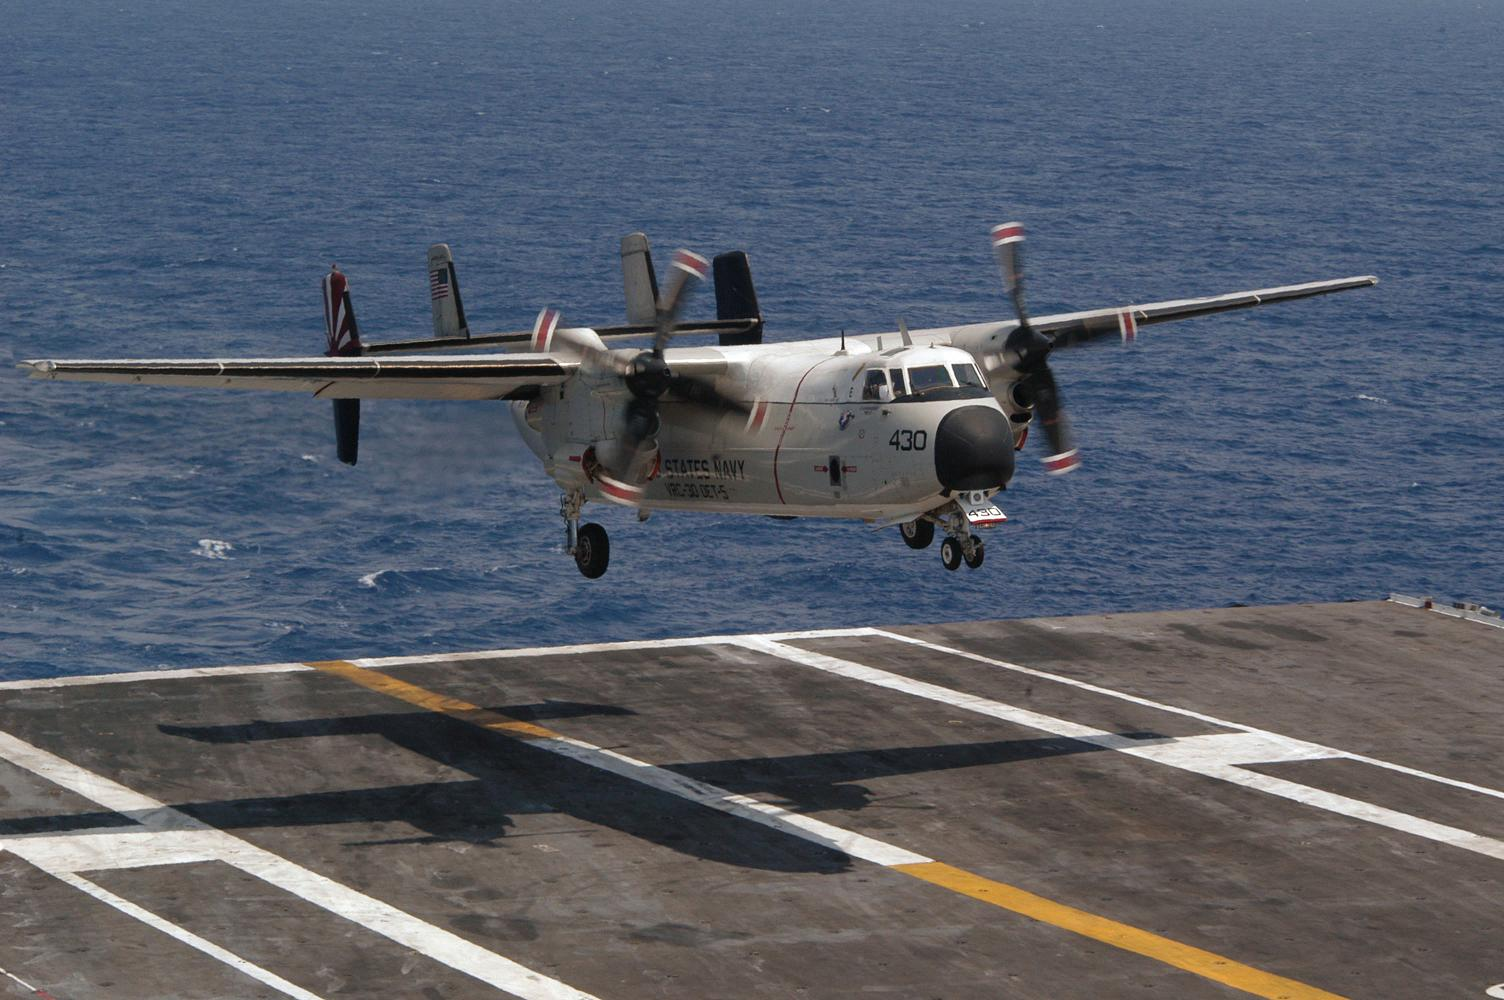 C-2A Greyhound - Pacific Ocean (July 20, 2004) - A C-2A Greyhound assigned to the ?Providers ? of Fleet Logistic Squadron Three Zero (VRC-30), lands on the flight deck of USS Kitty Hawk (CV 63) during Carrier Qualifications (CQ), in the western Pacific Ocean. Kitty Hawk is one of seven carrier strike groups (CSGs) involved in Summer Pulse 2004. Summer Pulse 2004 is the simultaneous deployment of seven carrier strike groups (CSGs), demonstrating the ability of the Navy to provide credible combat capability across the globe, in five theaters with other U.S., allied, and coalition military forces. Summer Pulse is the Navy?s first deployment under its new Fleet Response Plan (FRP). Kitty Hawk demonstrates power projection and sea control, as the world